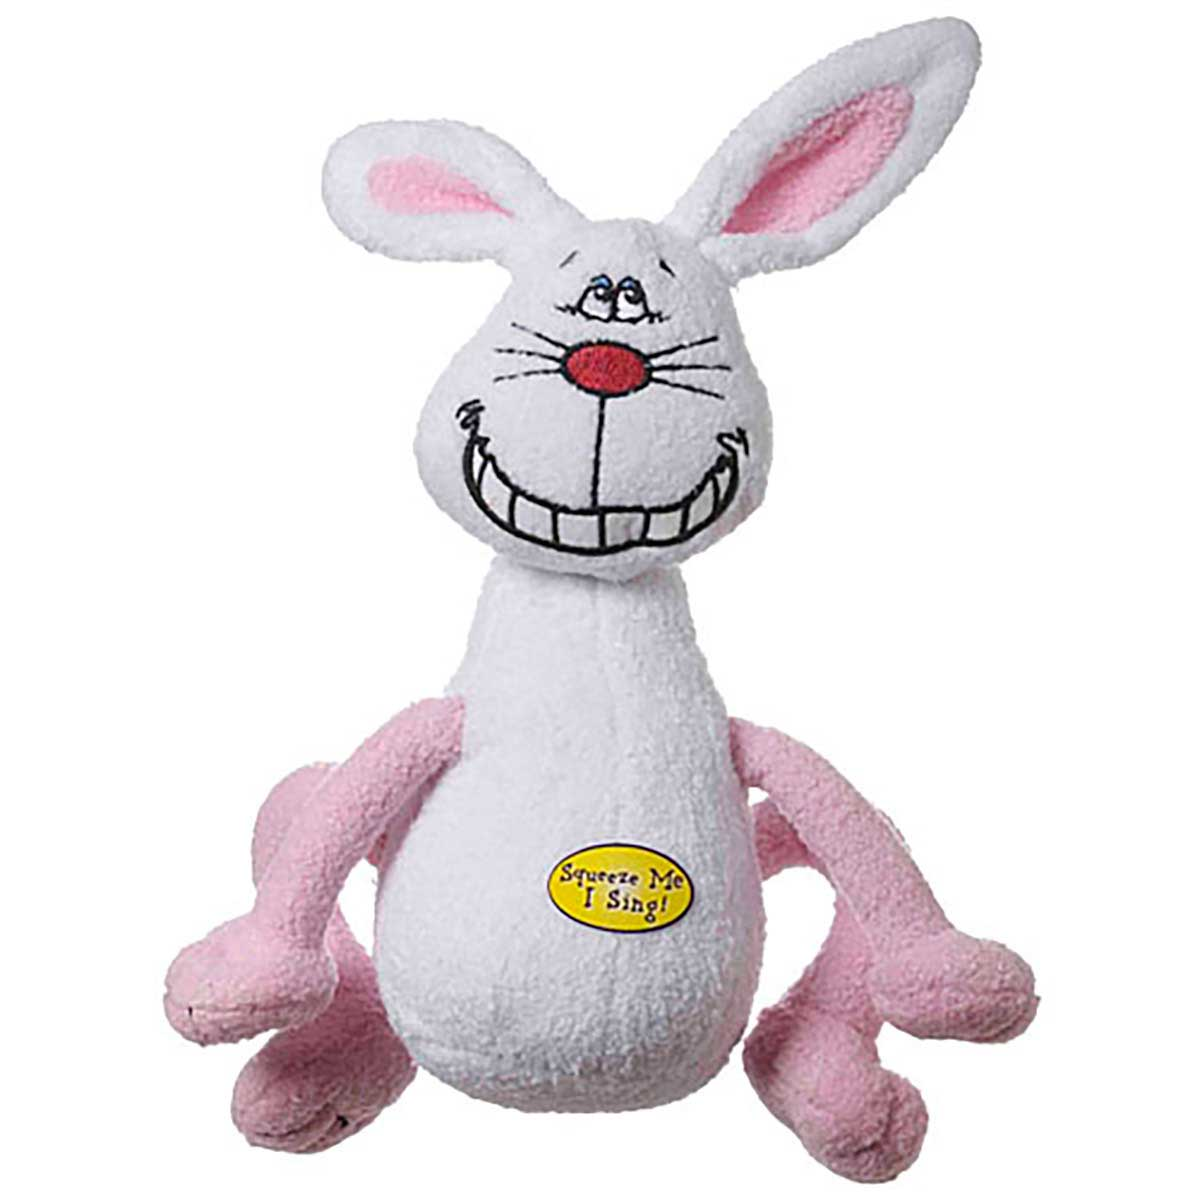 Deedle Dude Plush Rabbit Dog Toy